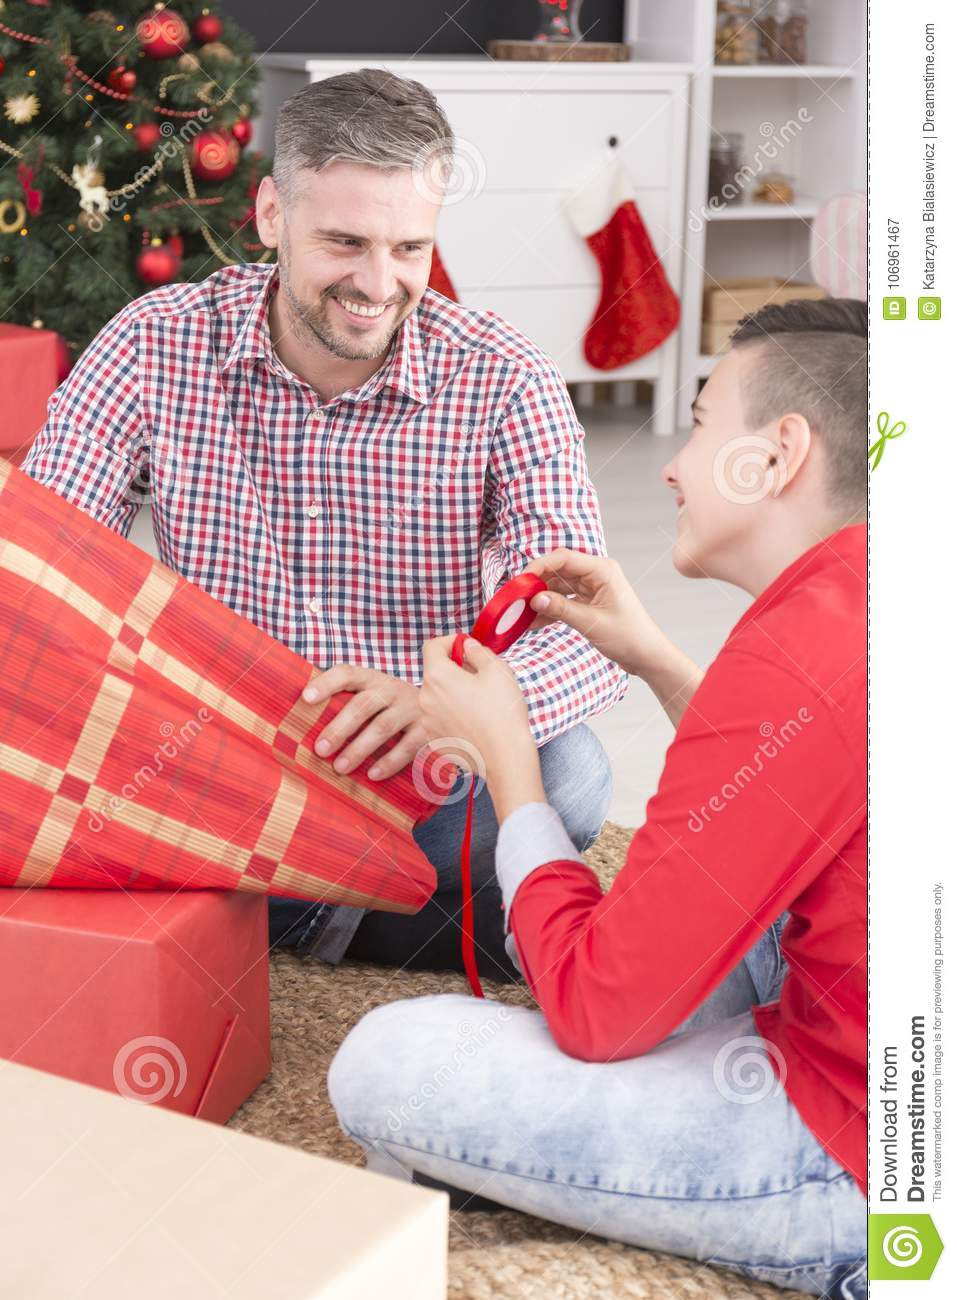 Father And Son Packing Gifts Stock Image - Image of merry